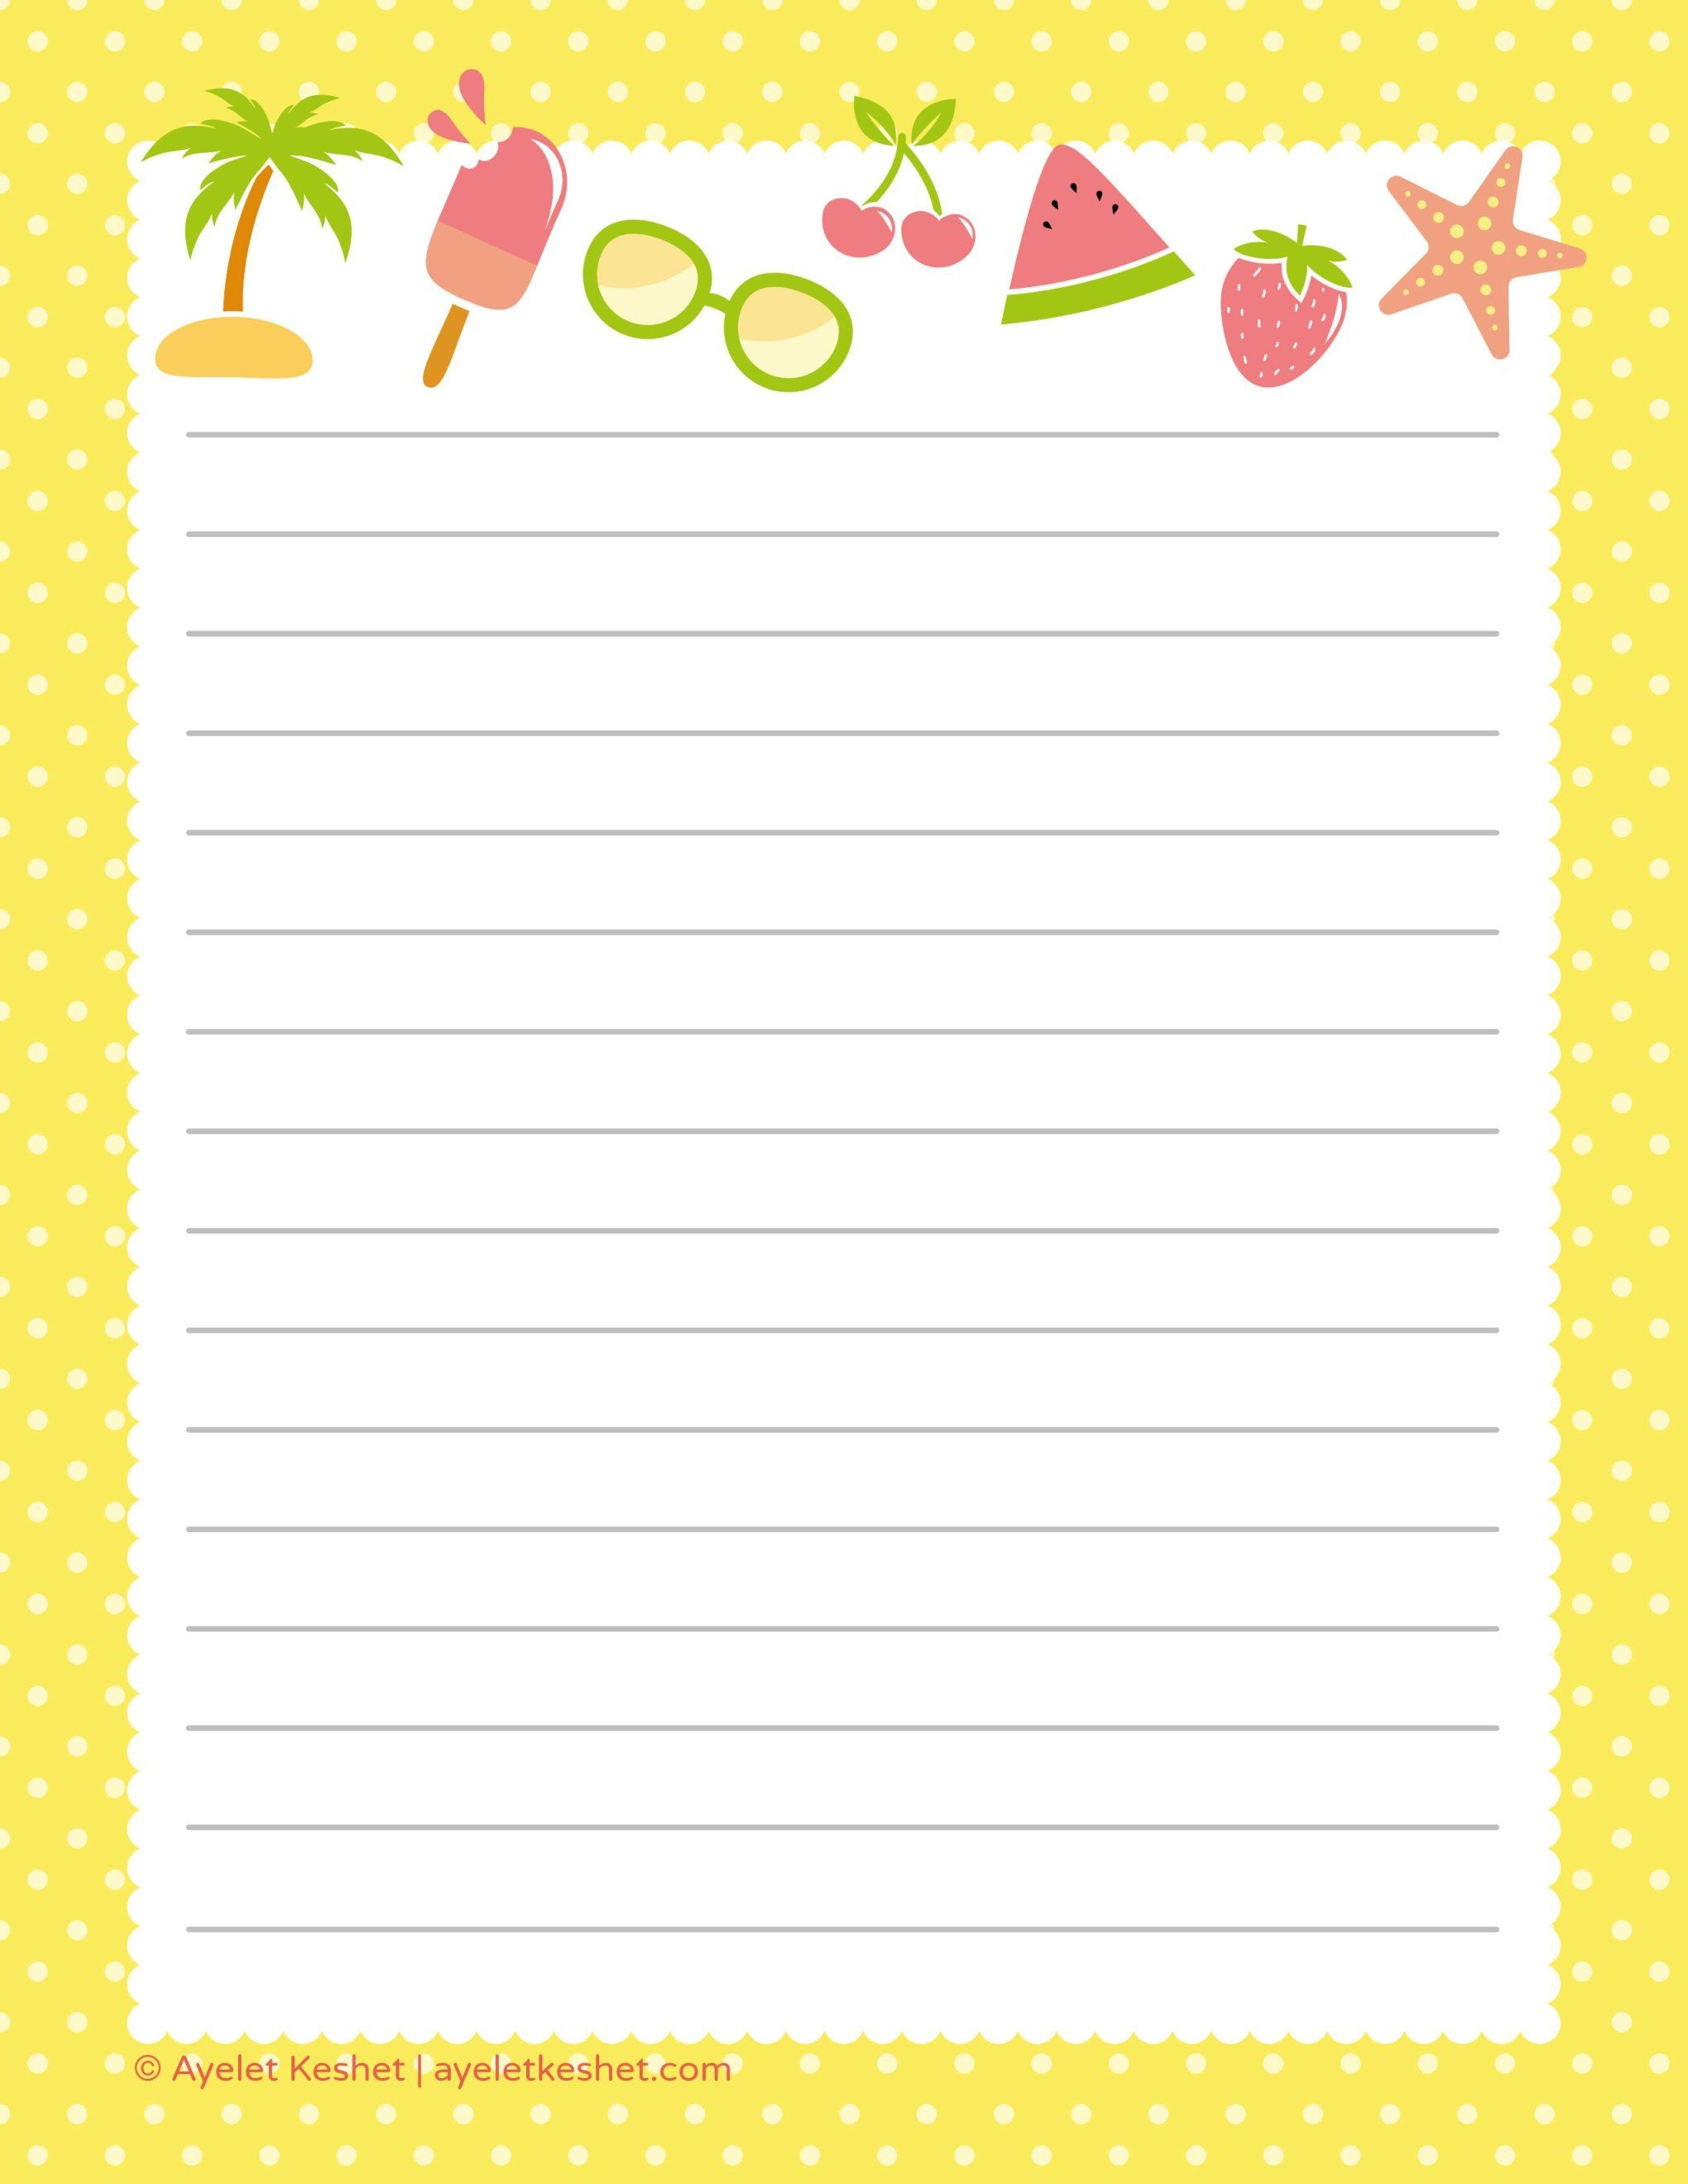 Free Printable Letter Paper | Printables To Go | Free Printable - Free Printable Stationery Paper